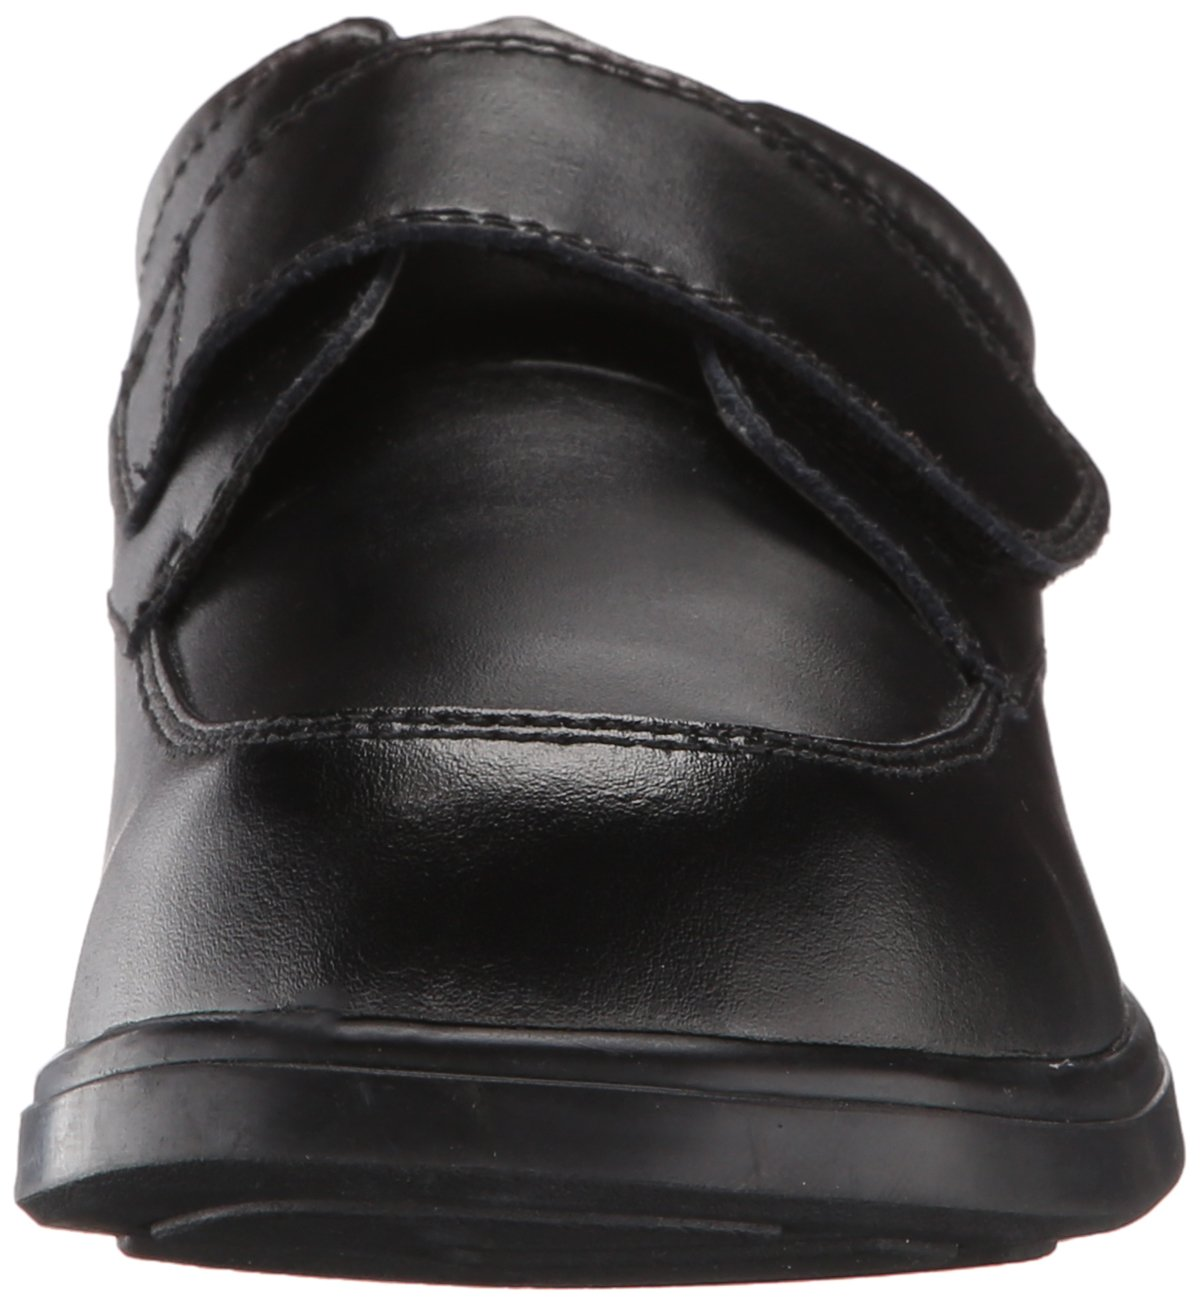 Hush Puppies Gavin Uniform Dress Shoe (Toddler/Little Kid/Big Kid), Black, 3 M US Little Kid by Hush Puppies (Image #4)